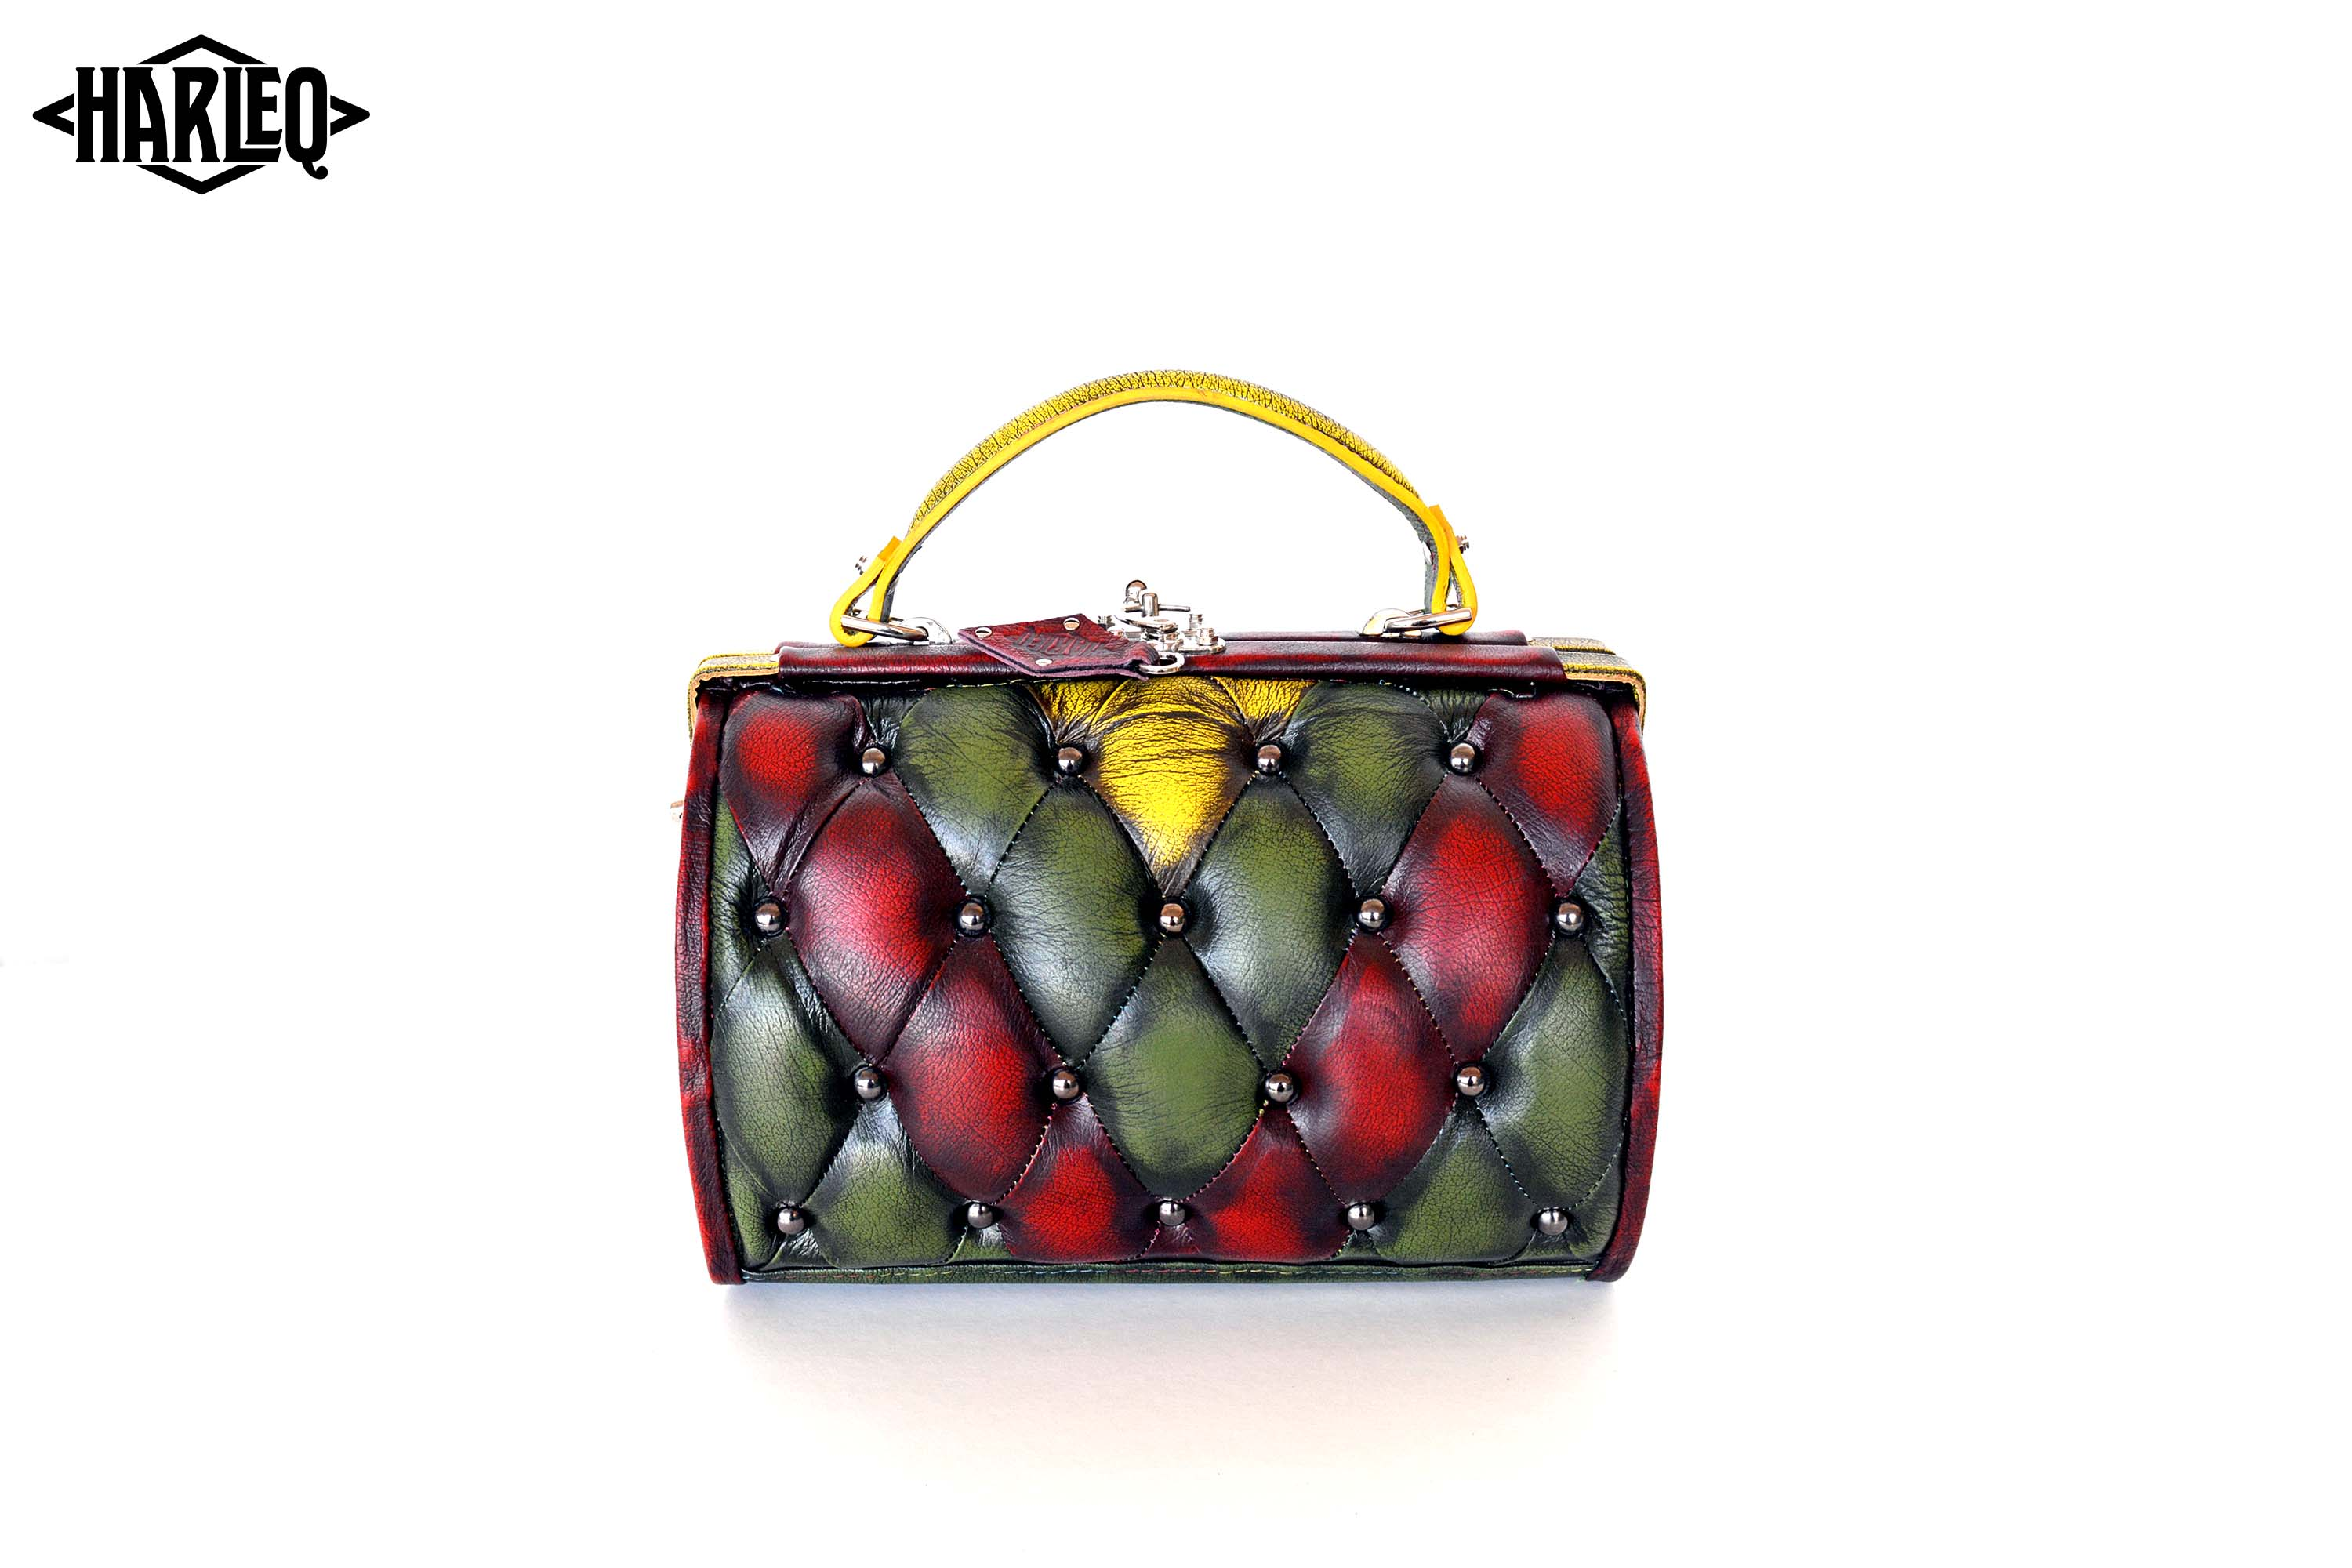 harleq-trunk-red-green-yellow-leather